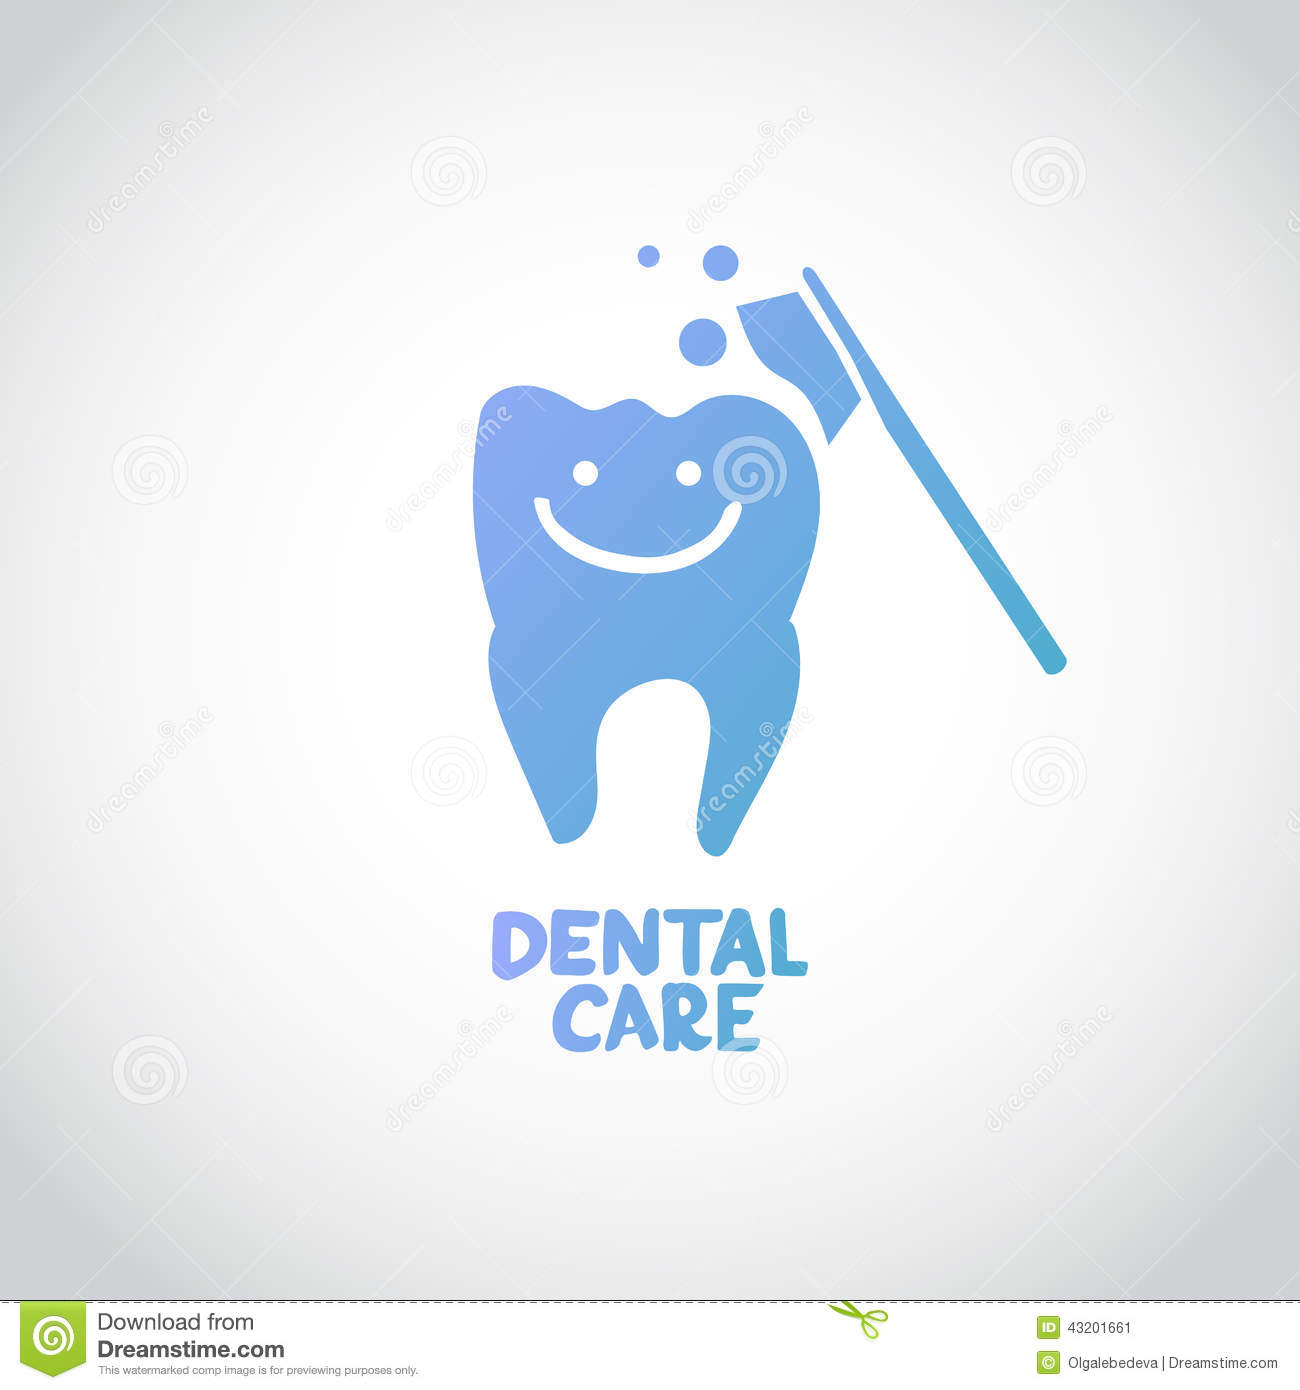 dental-care-design-concept-tooth-symbol-tooth-brush-43201661.jpg